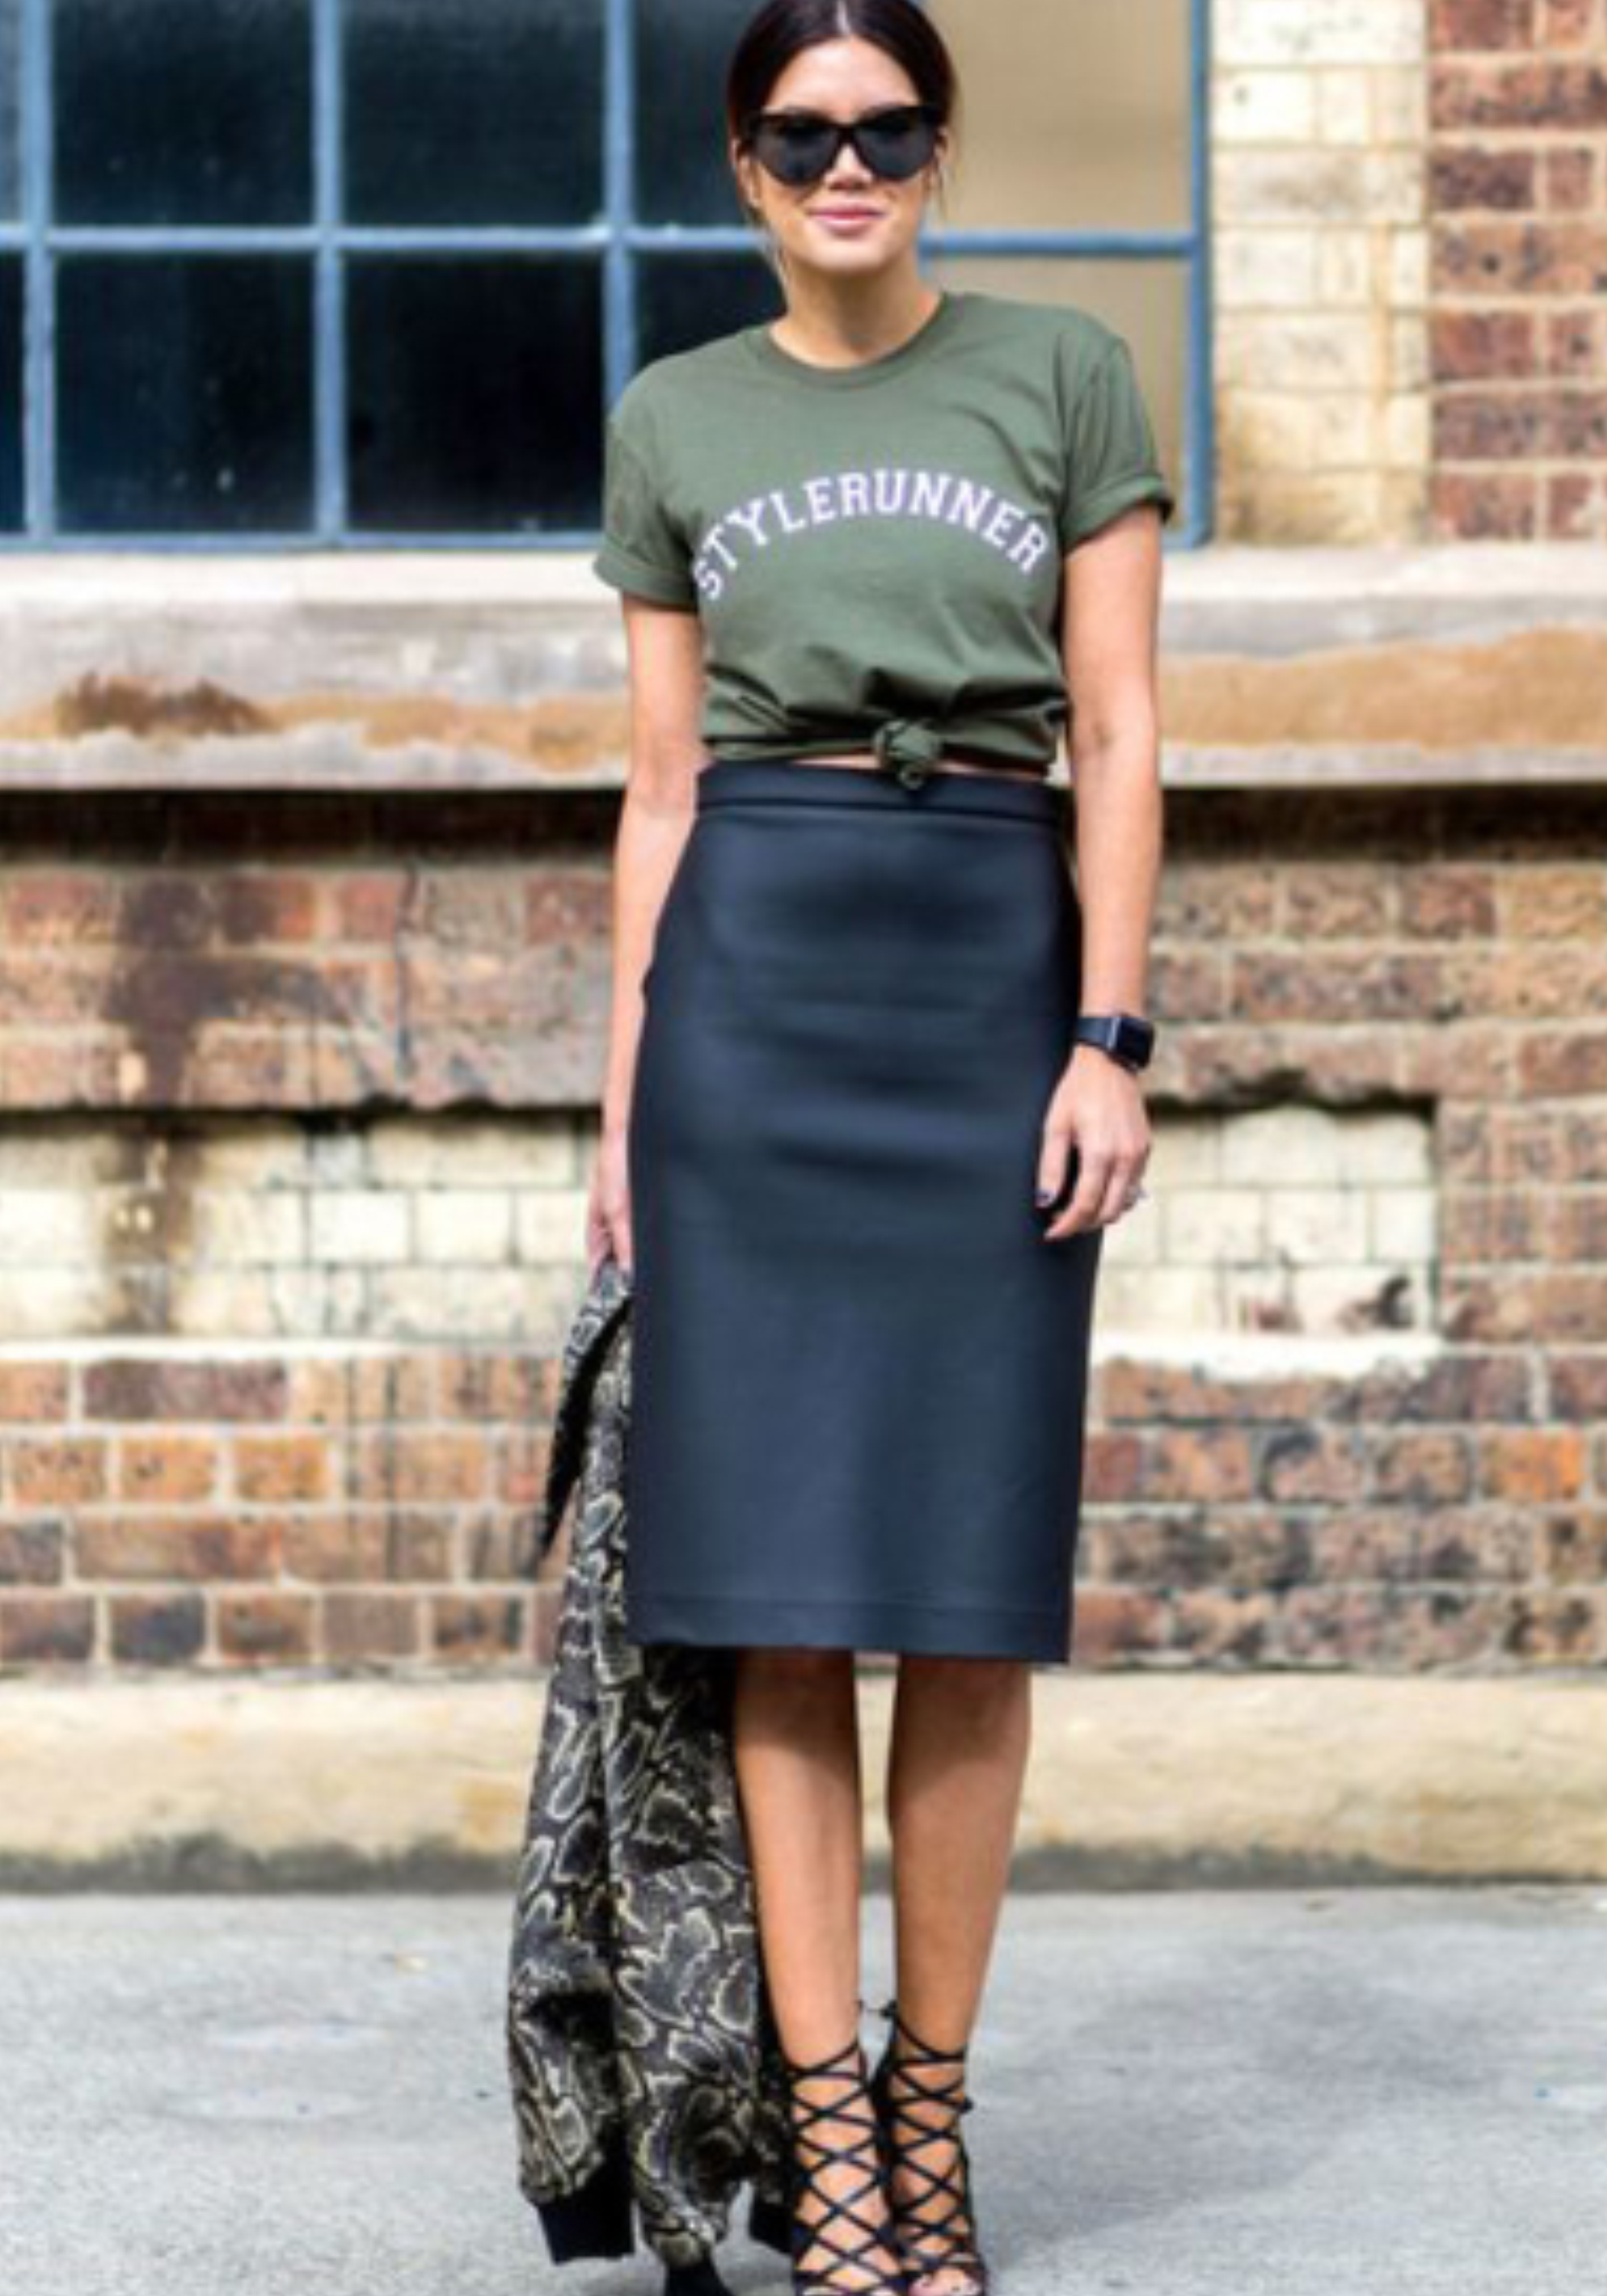 Navy Pencil Skirt + Stylerunner T-Shirt | https://thehautemommie.com/haute-style-midi-skirts-tee-shirts/